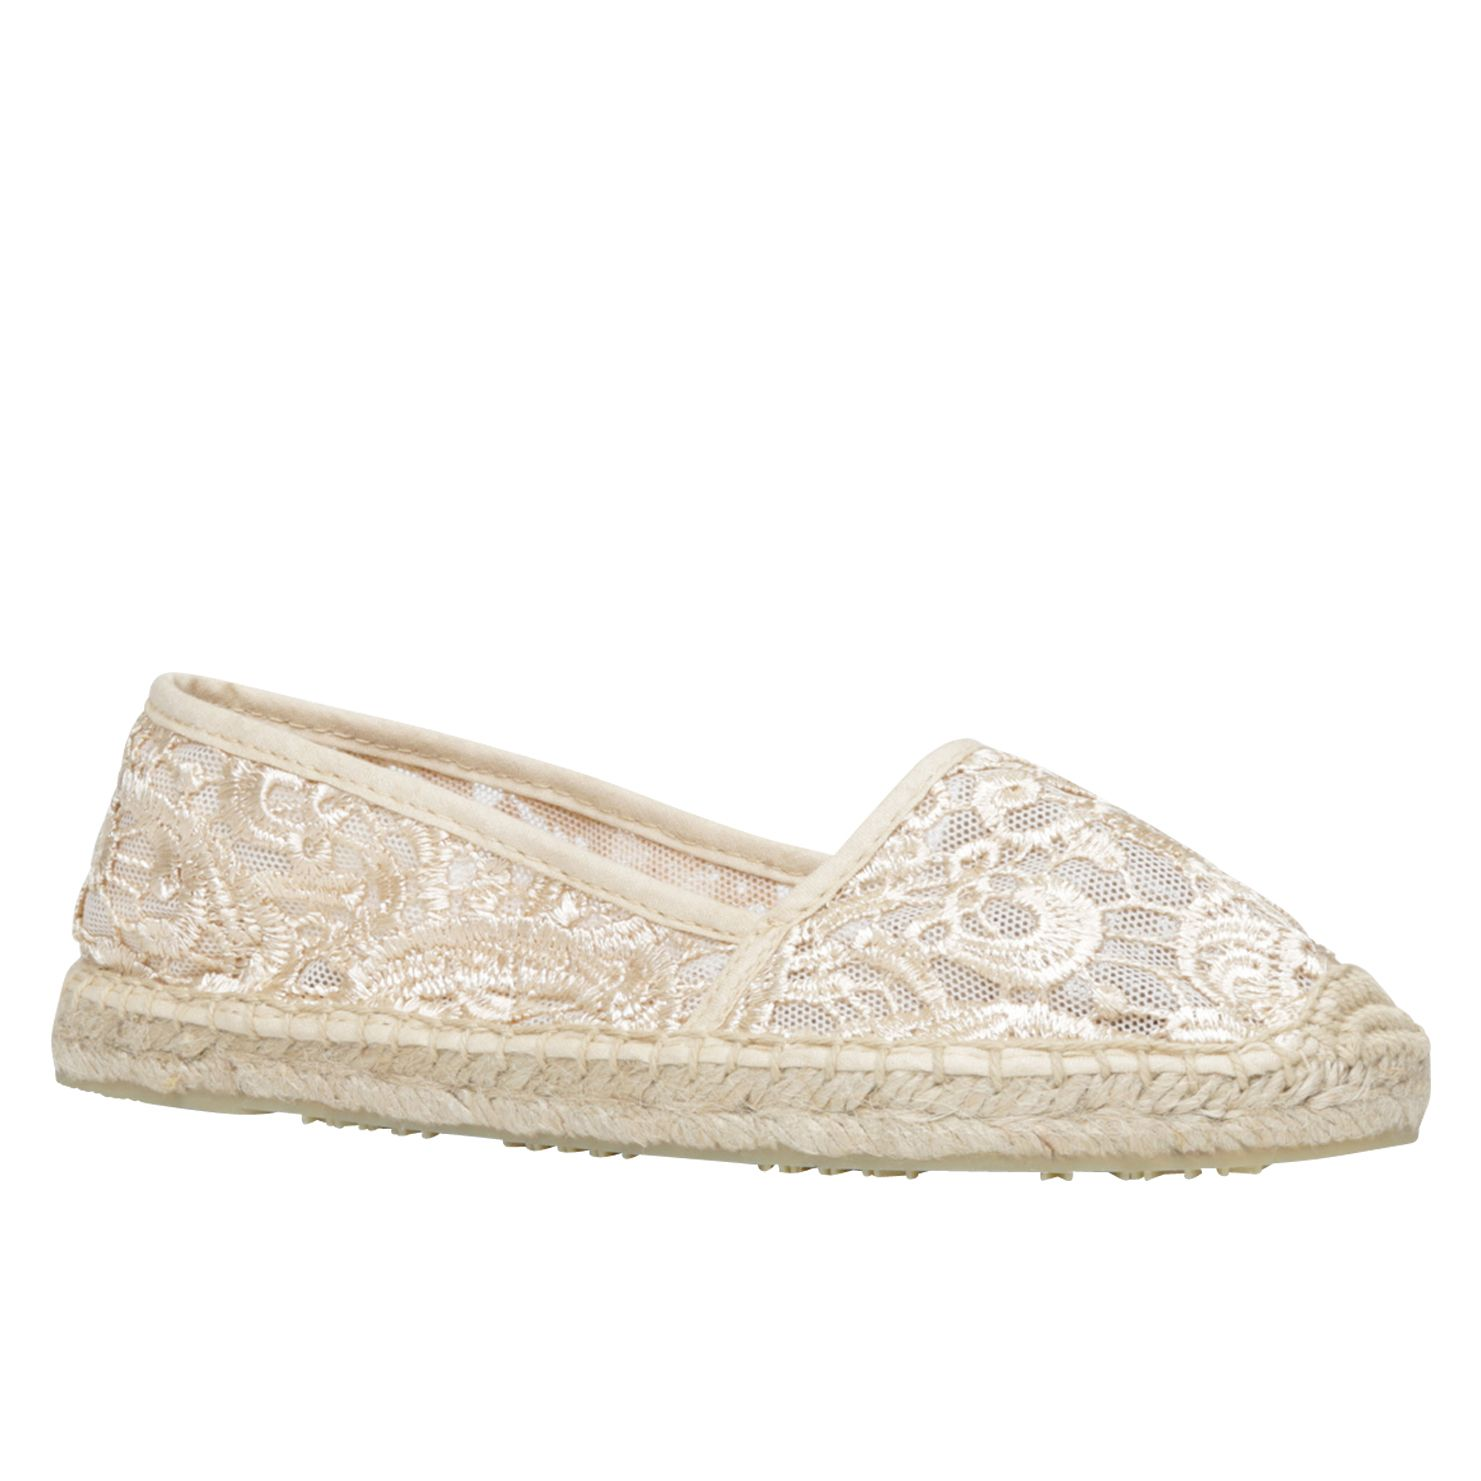 Agrano round toe espadrille shoes